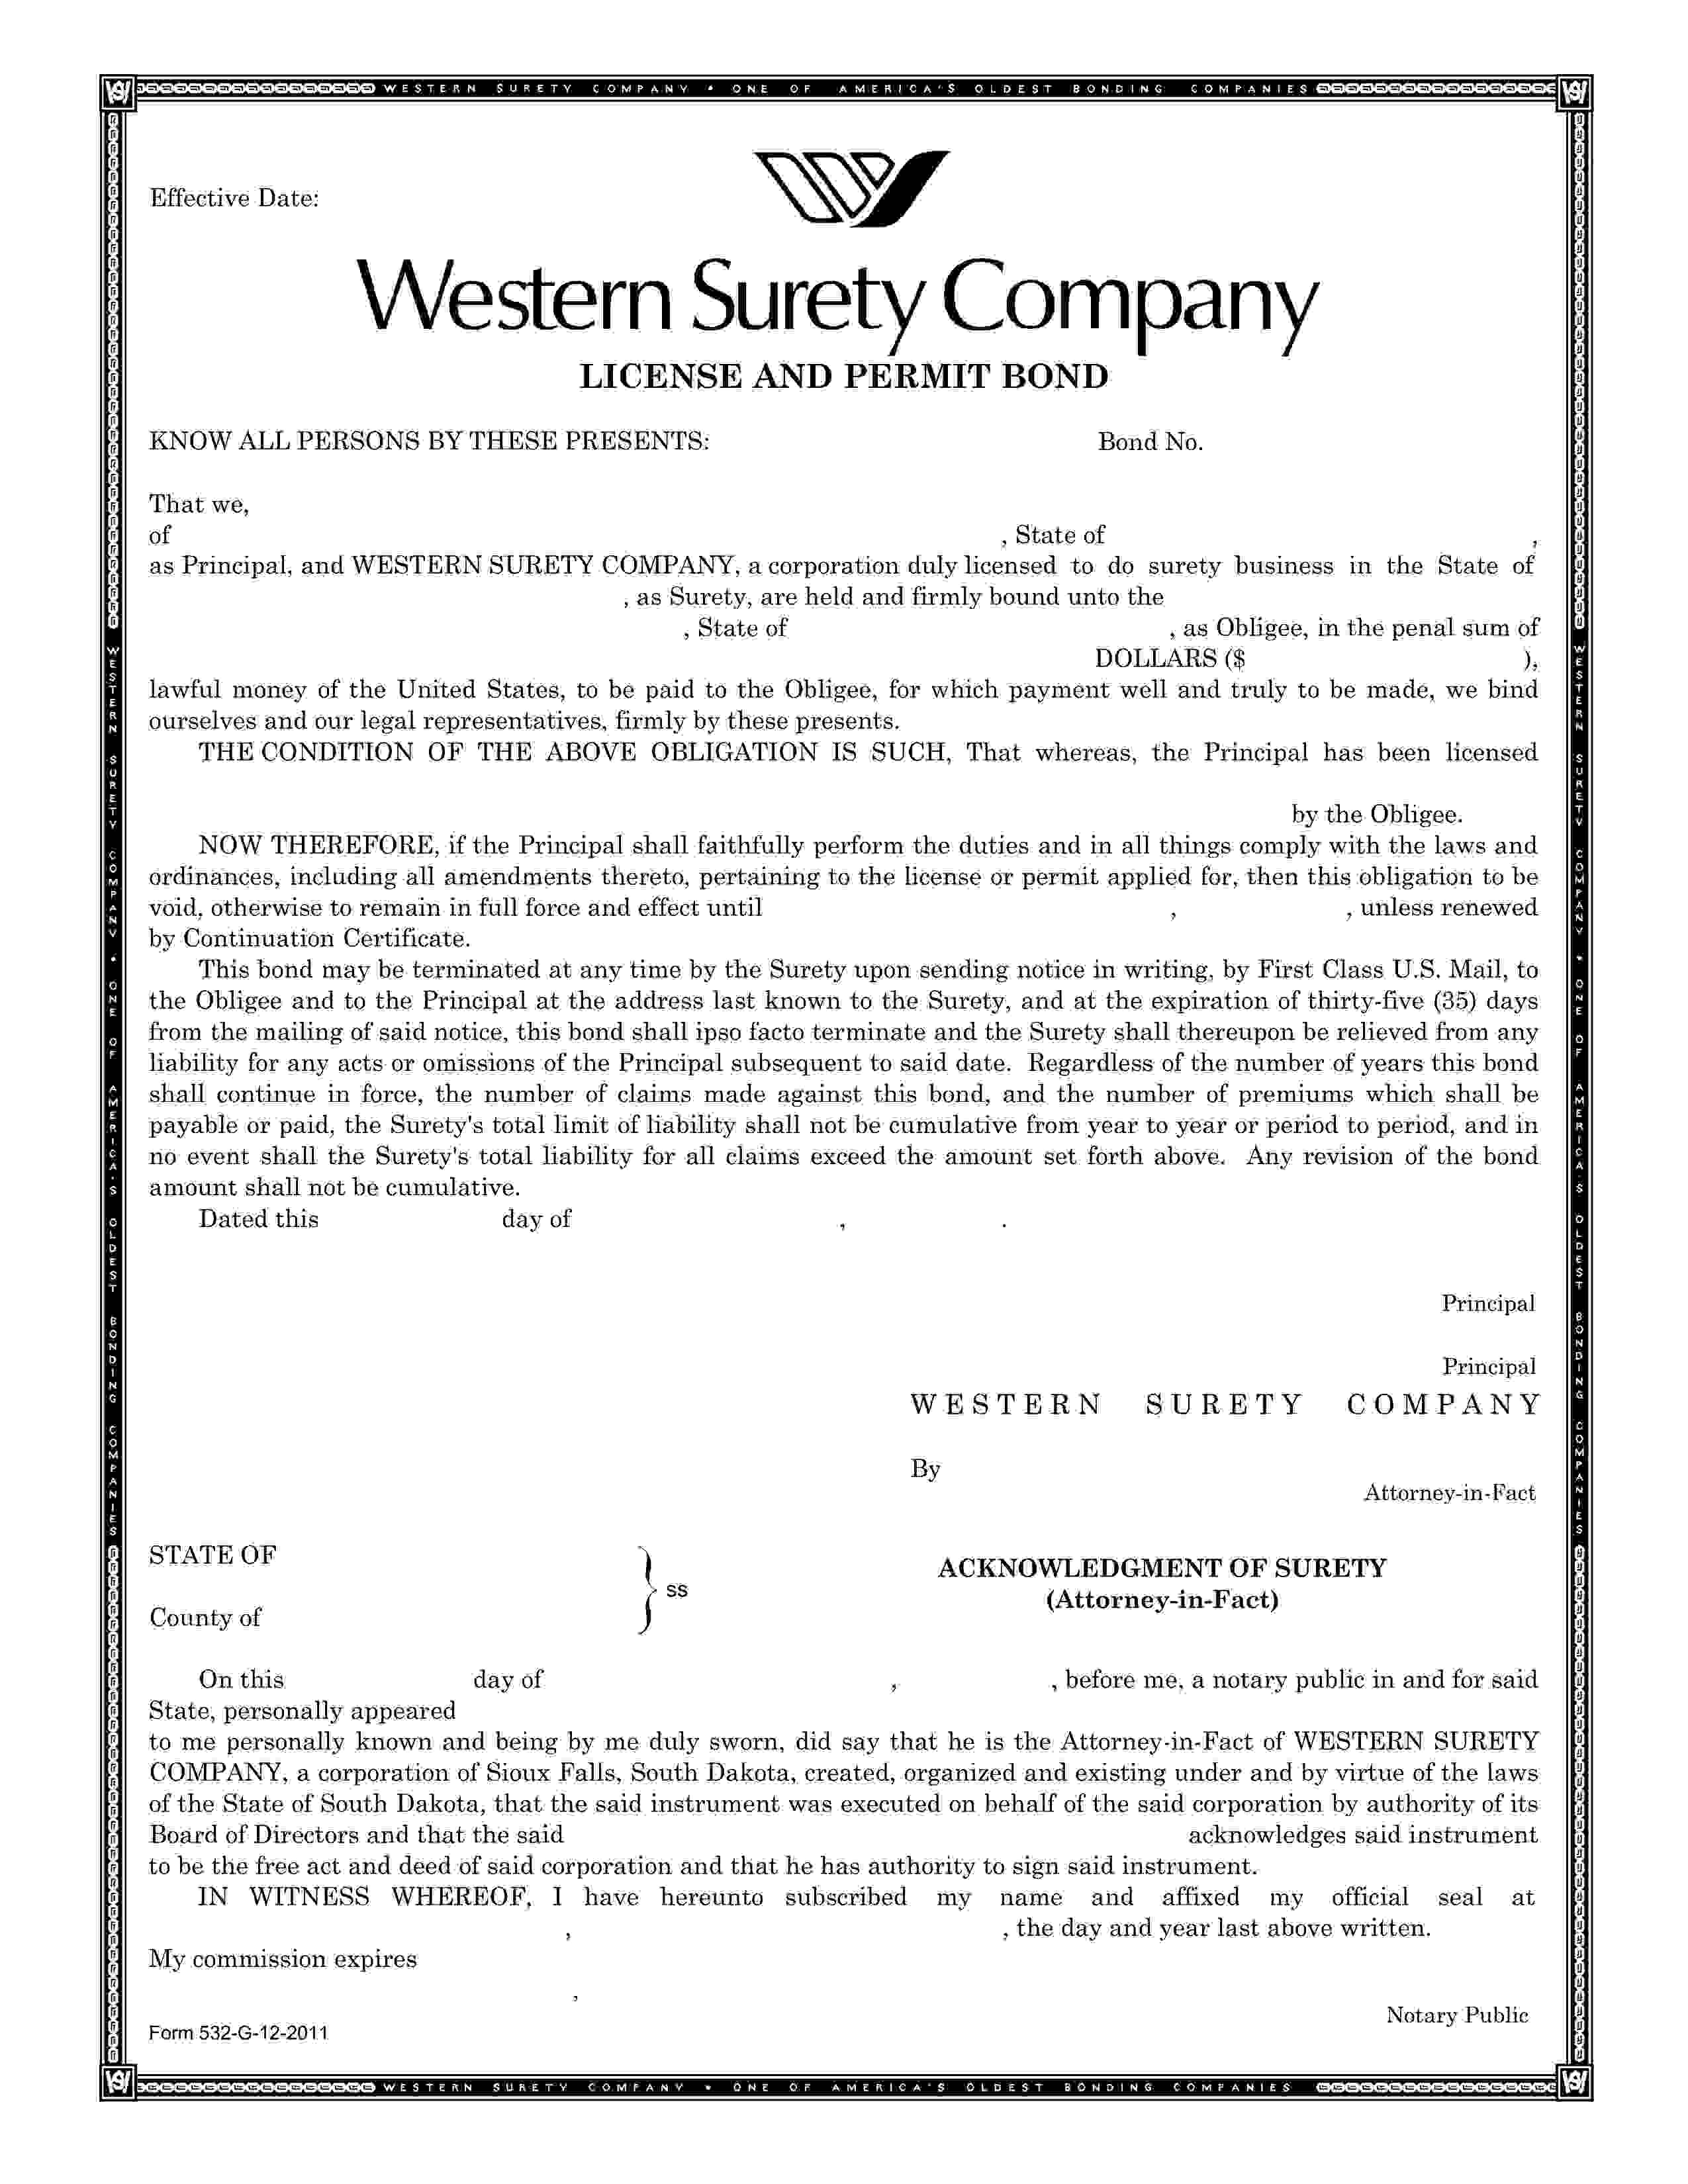 County of Will Contractor's License sample image